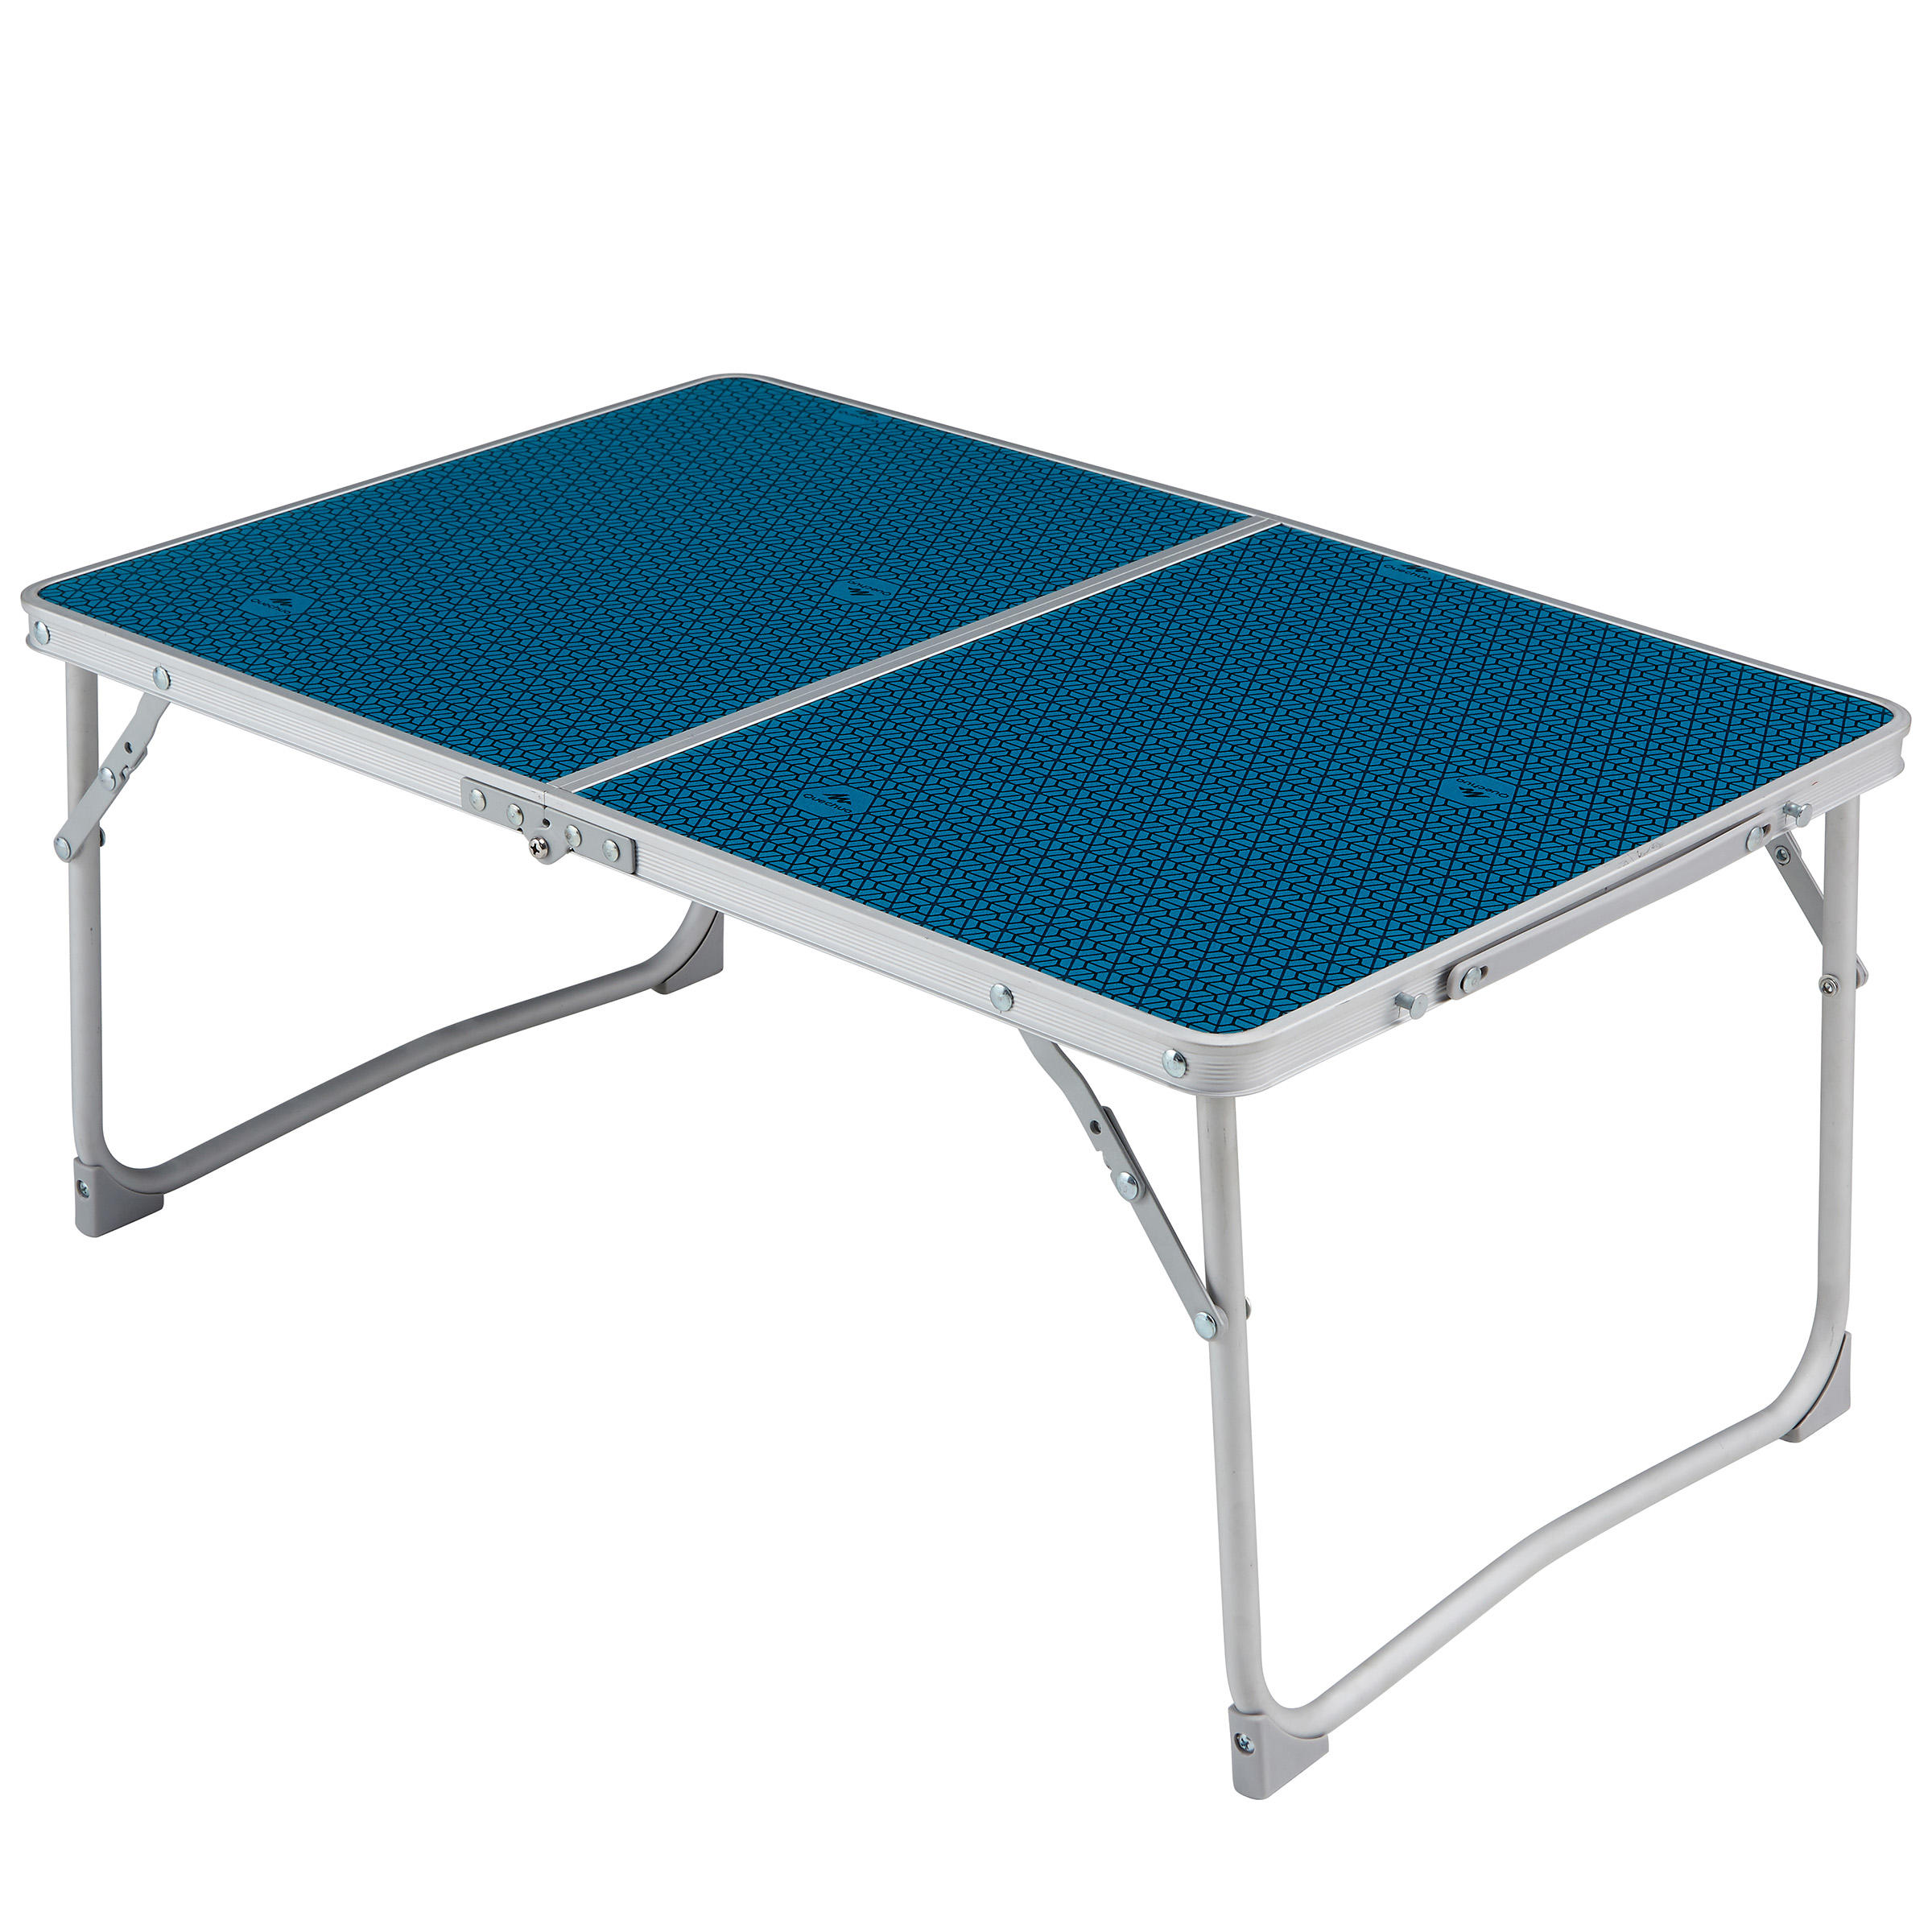 Table Basse Pliante De Camping Mh100 Bleue Quechua Decathlon